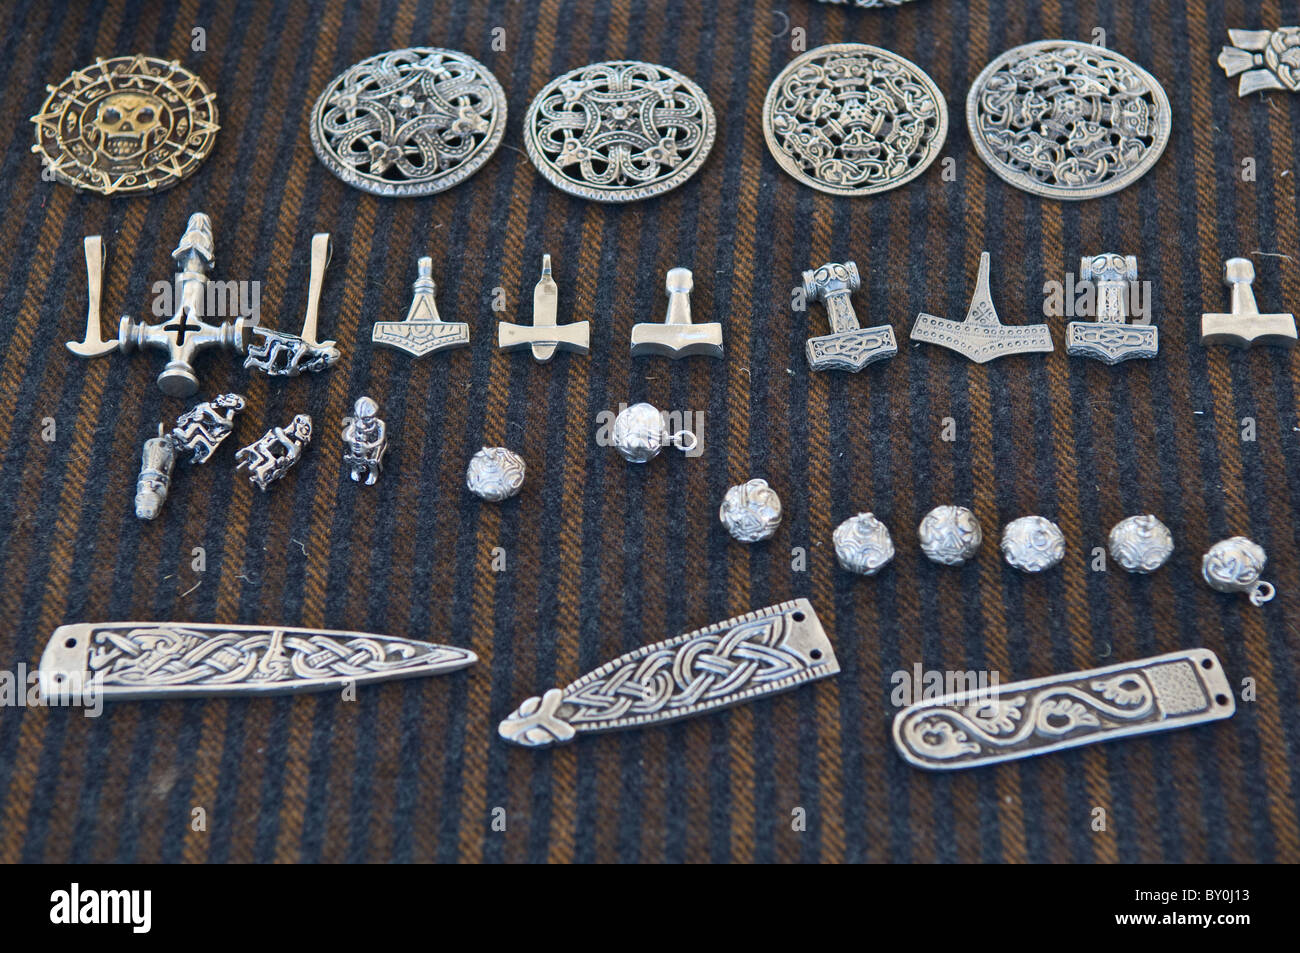 Close-up of Viking jewelery in silver. - Stock Image